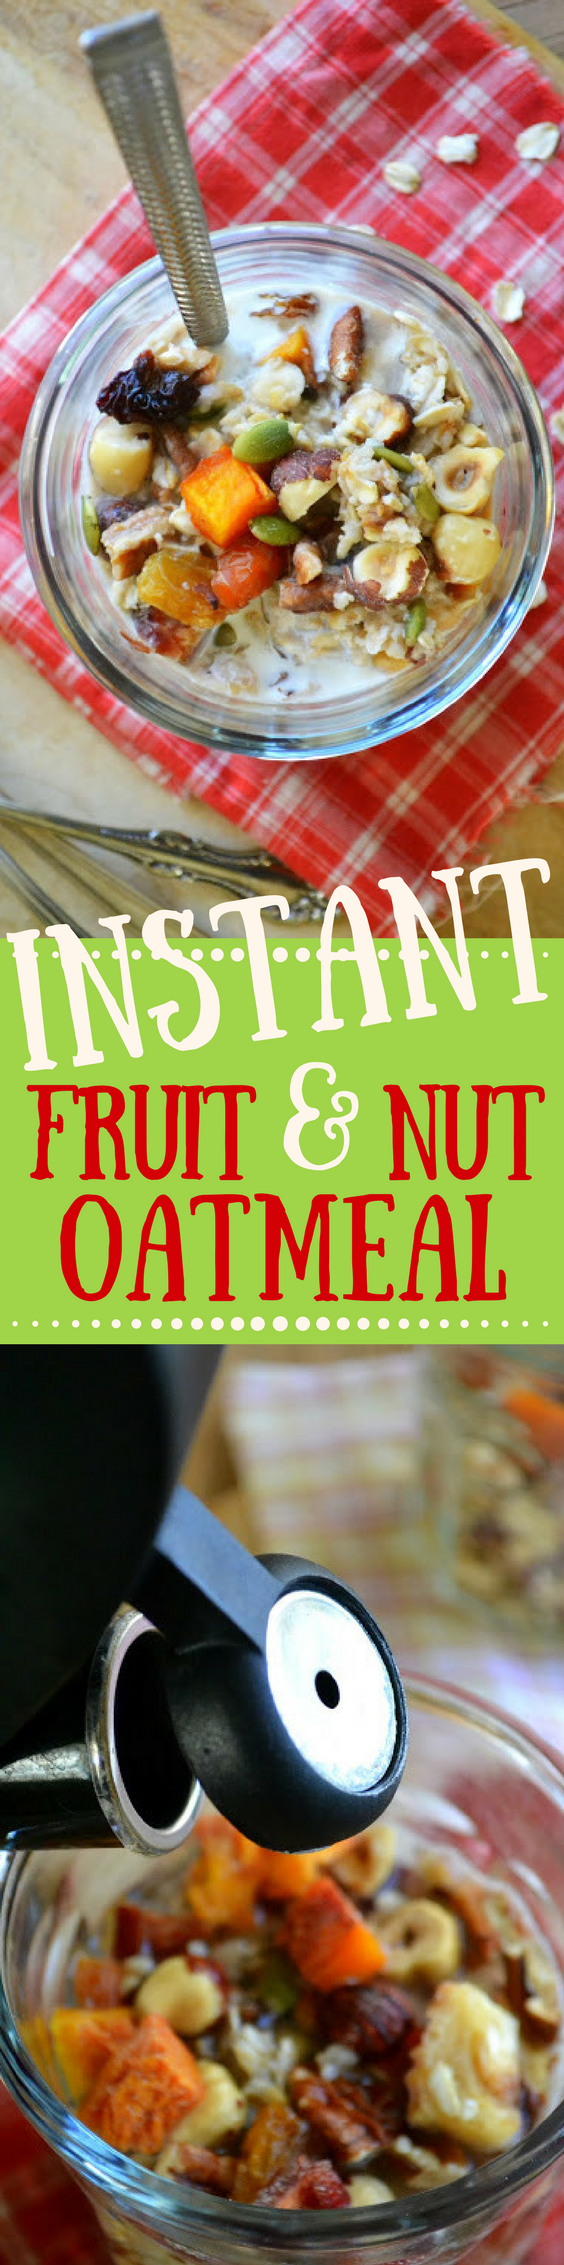 DIY Instant Fruit and Nut Oatmeal is vegan, gluten free, and an absolutely delicious way to start the day! | breakfast | muesli | overnight oats | breakfast bowl